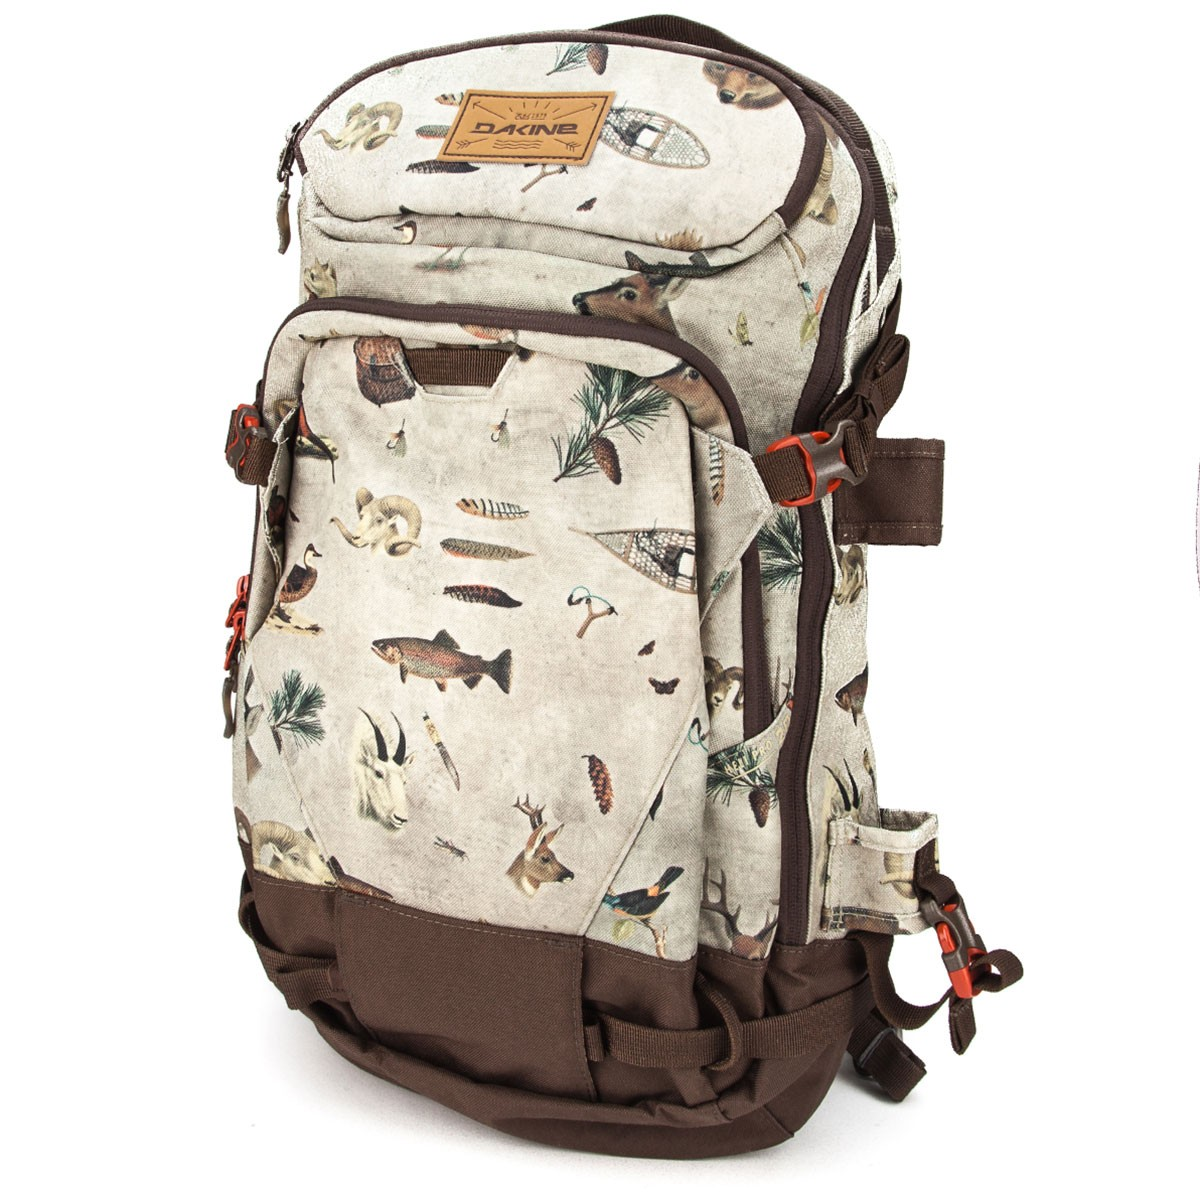 dakine heli pro dlx with 718 Cheap Dakine Heli Pro Backpacks on 231337923946 besides Dakine Womens Heli Pro DLX Snow Backpack 18L Highland WCamelbak  64215 also Search in addition Dakine Heli Pro 20l Gifford likewise Shopzilla emsrc pc product color pup e 16 pup id 434029033436.